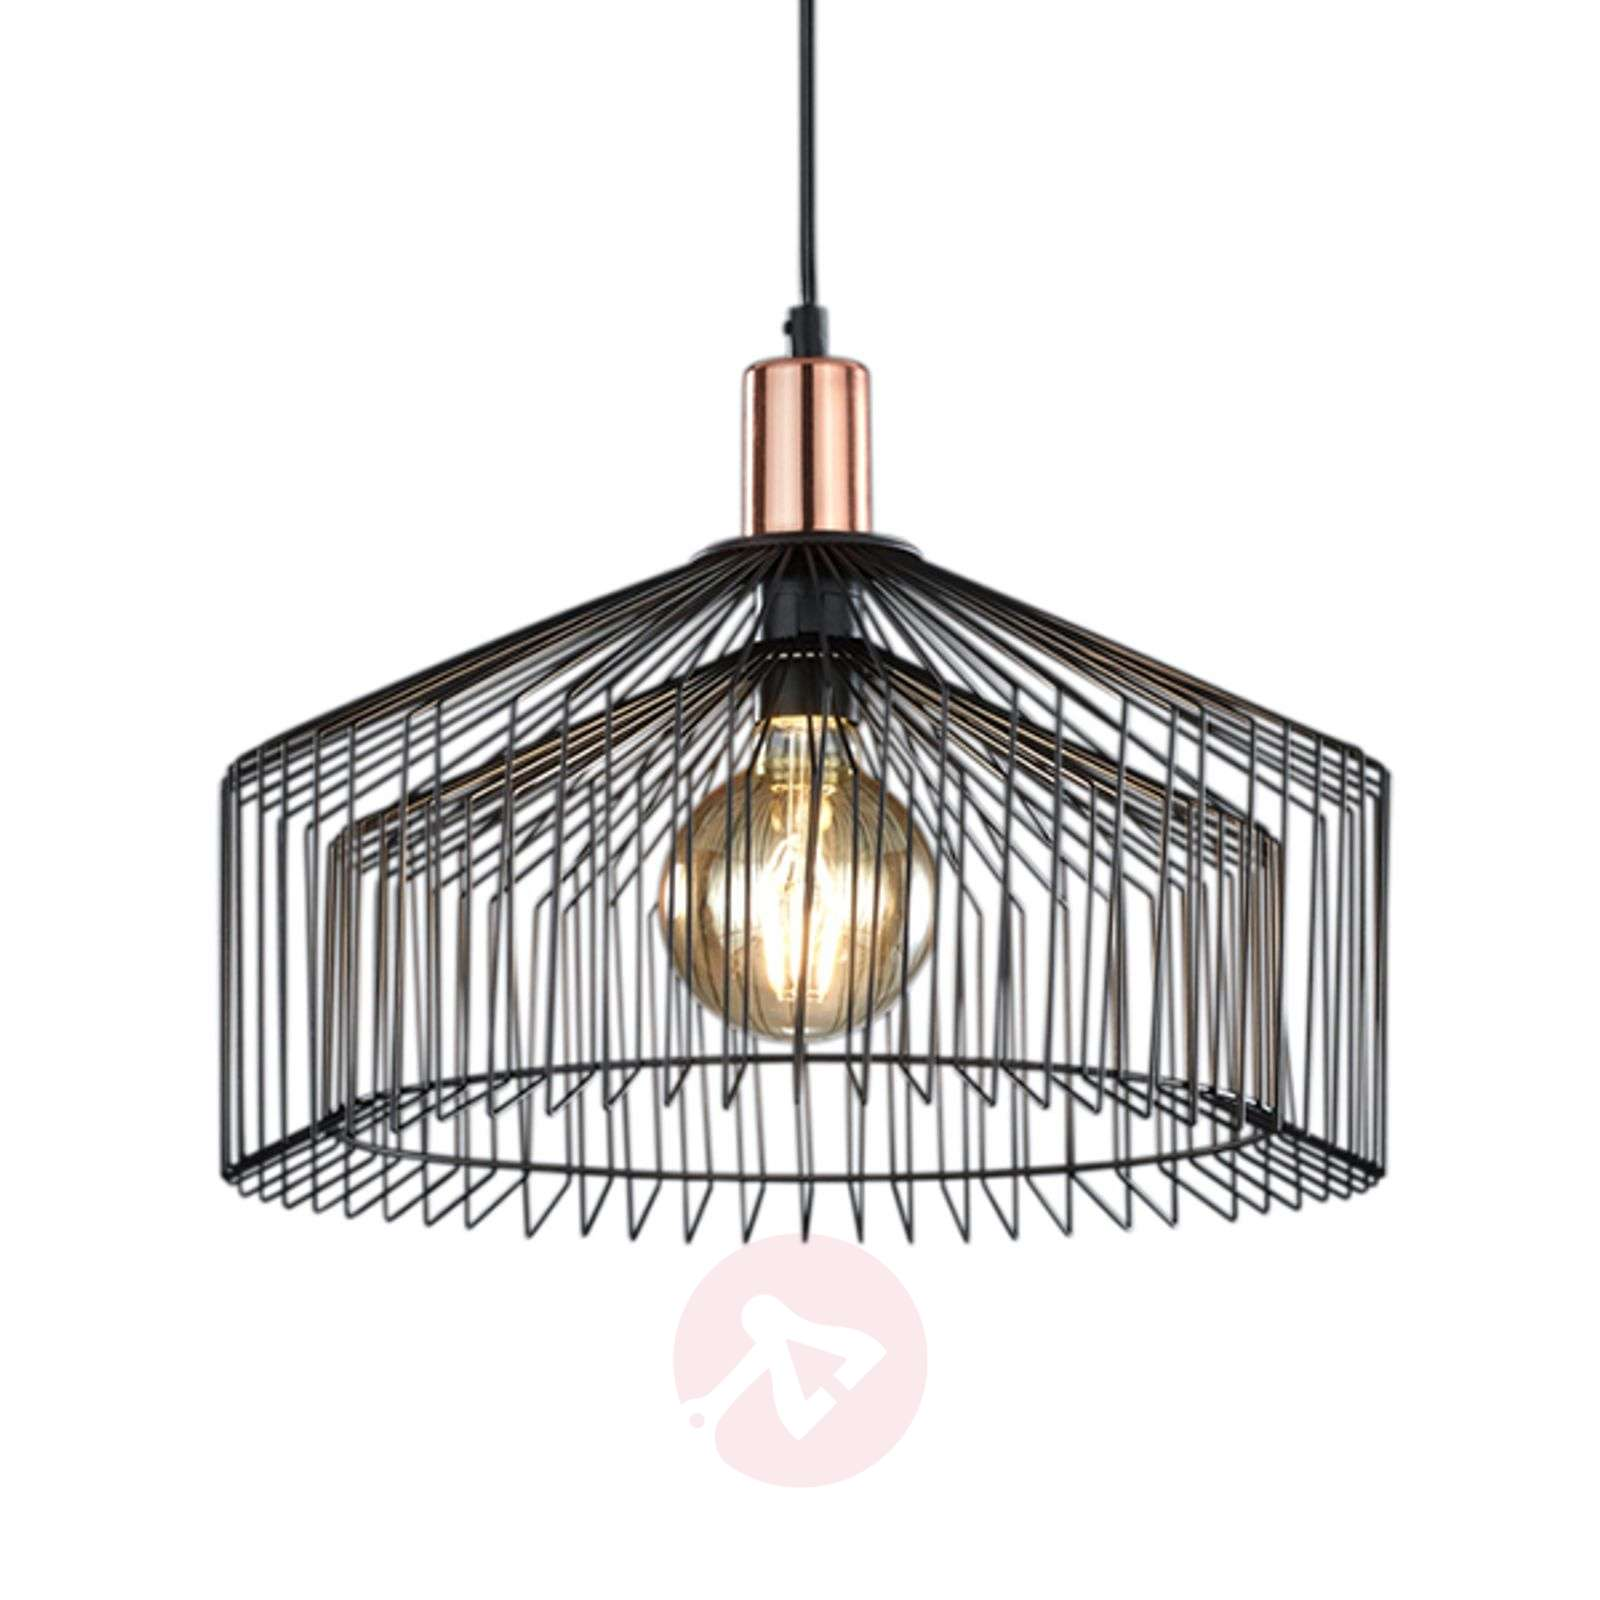 light cage hanging lamp guard shade pendant industrial metal urban island close lighting products bare open for retro wire